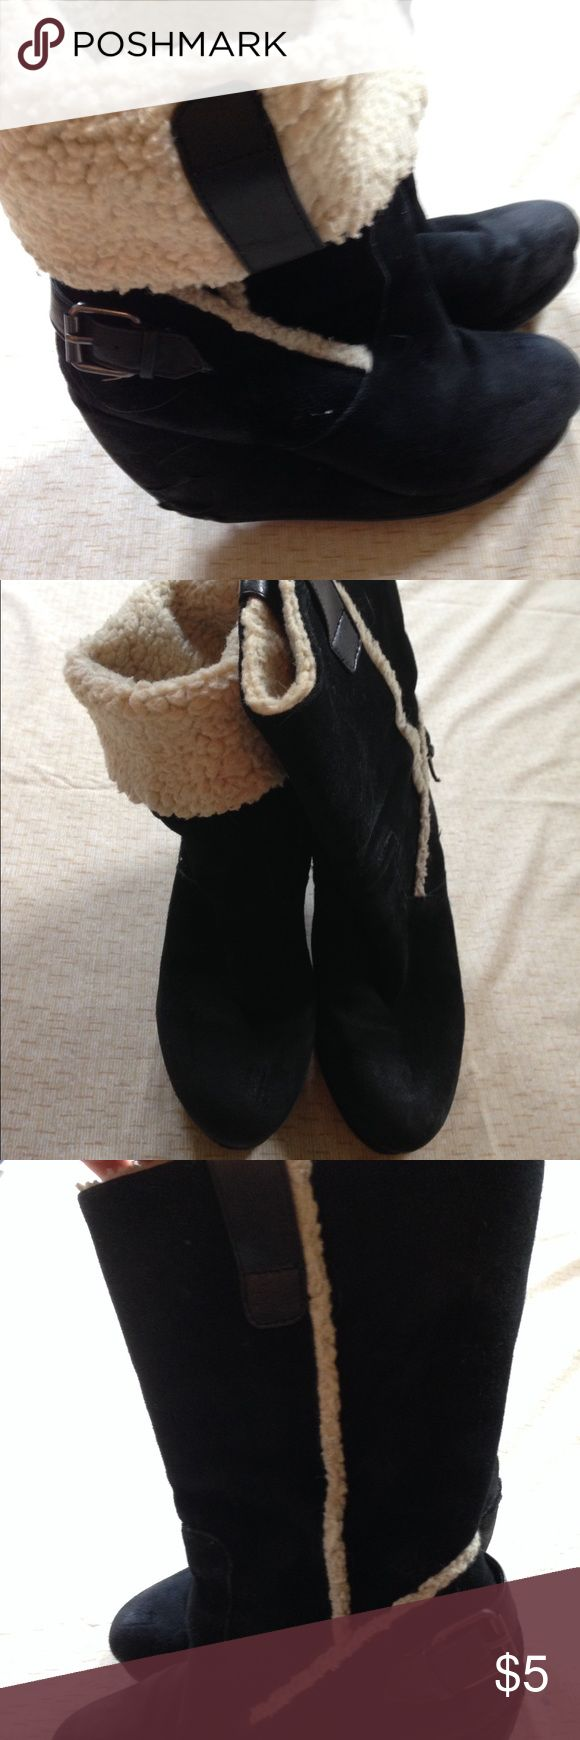 Nine West Black Winter Wedge Boots - Size 8 Nine West Women's Wedge Winter Boots - Size 8  Very worn Heels are in bad shape  They can be cuffed down or worn up.   Questions please ask Nine West Shoes Winter & Rain Boots